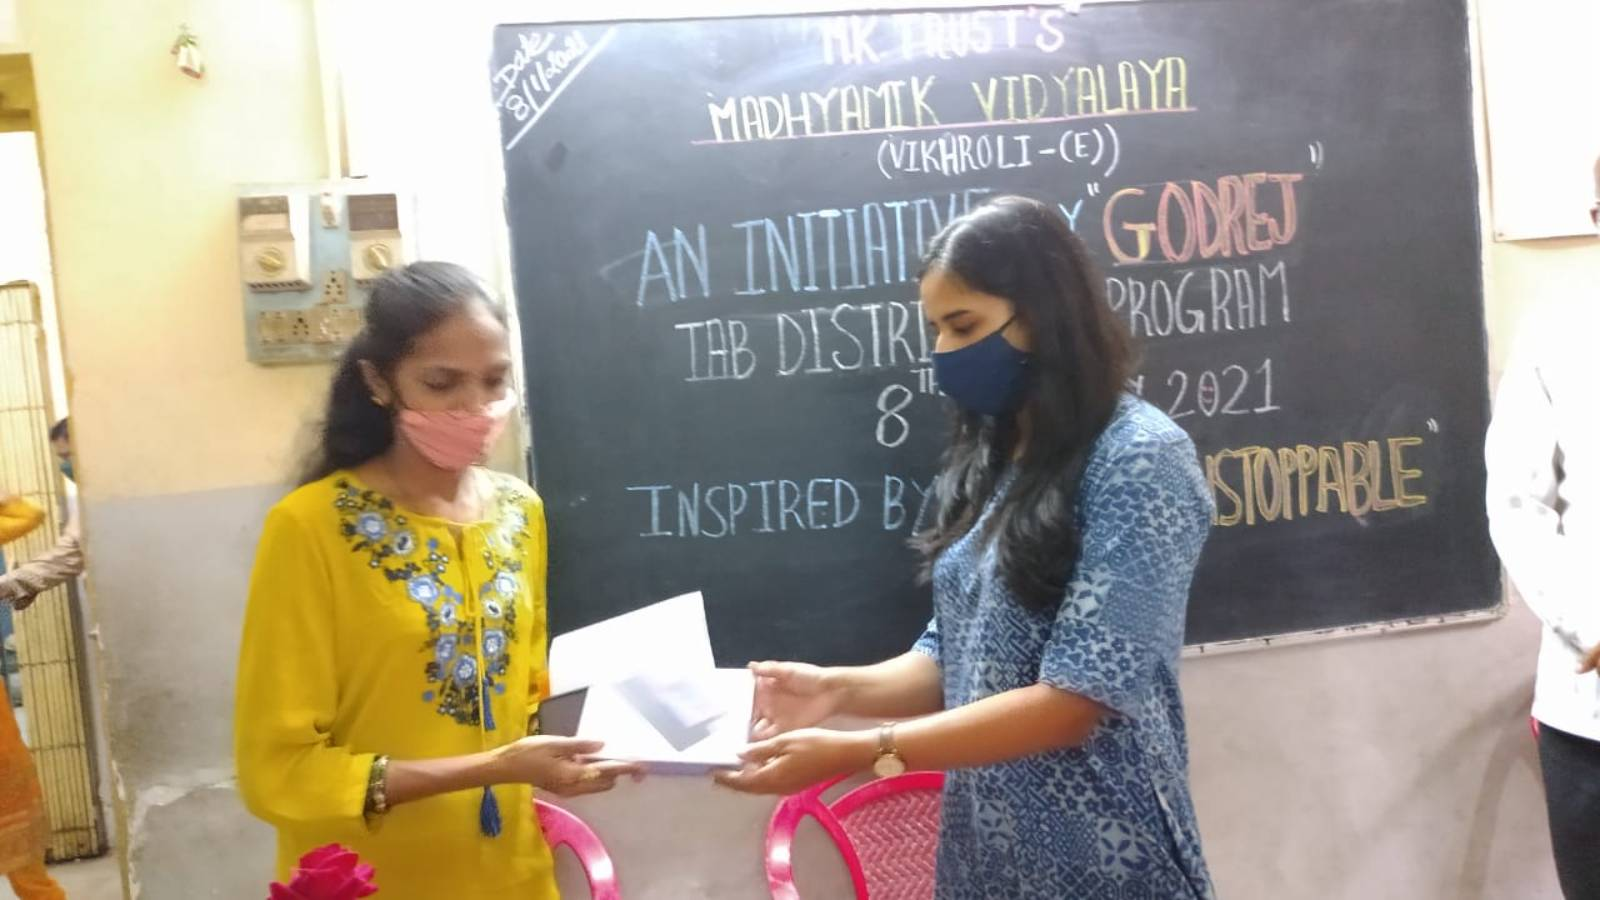 Tablet Distribution to Municipal School Students